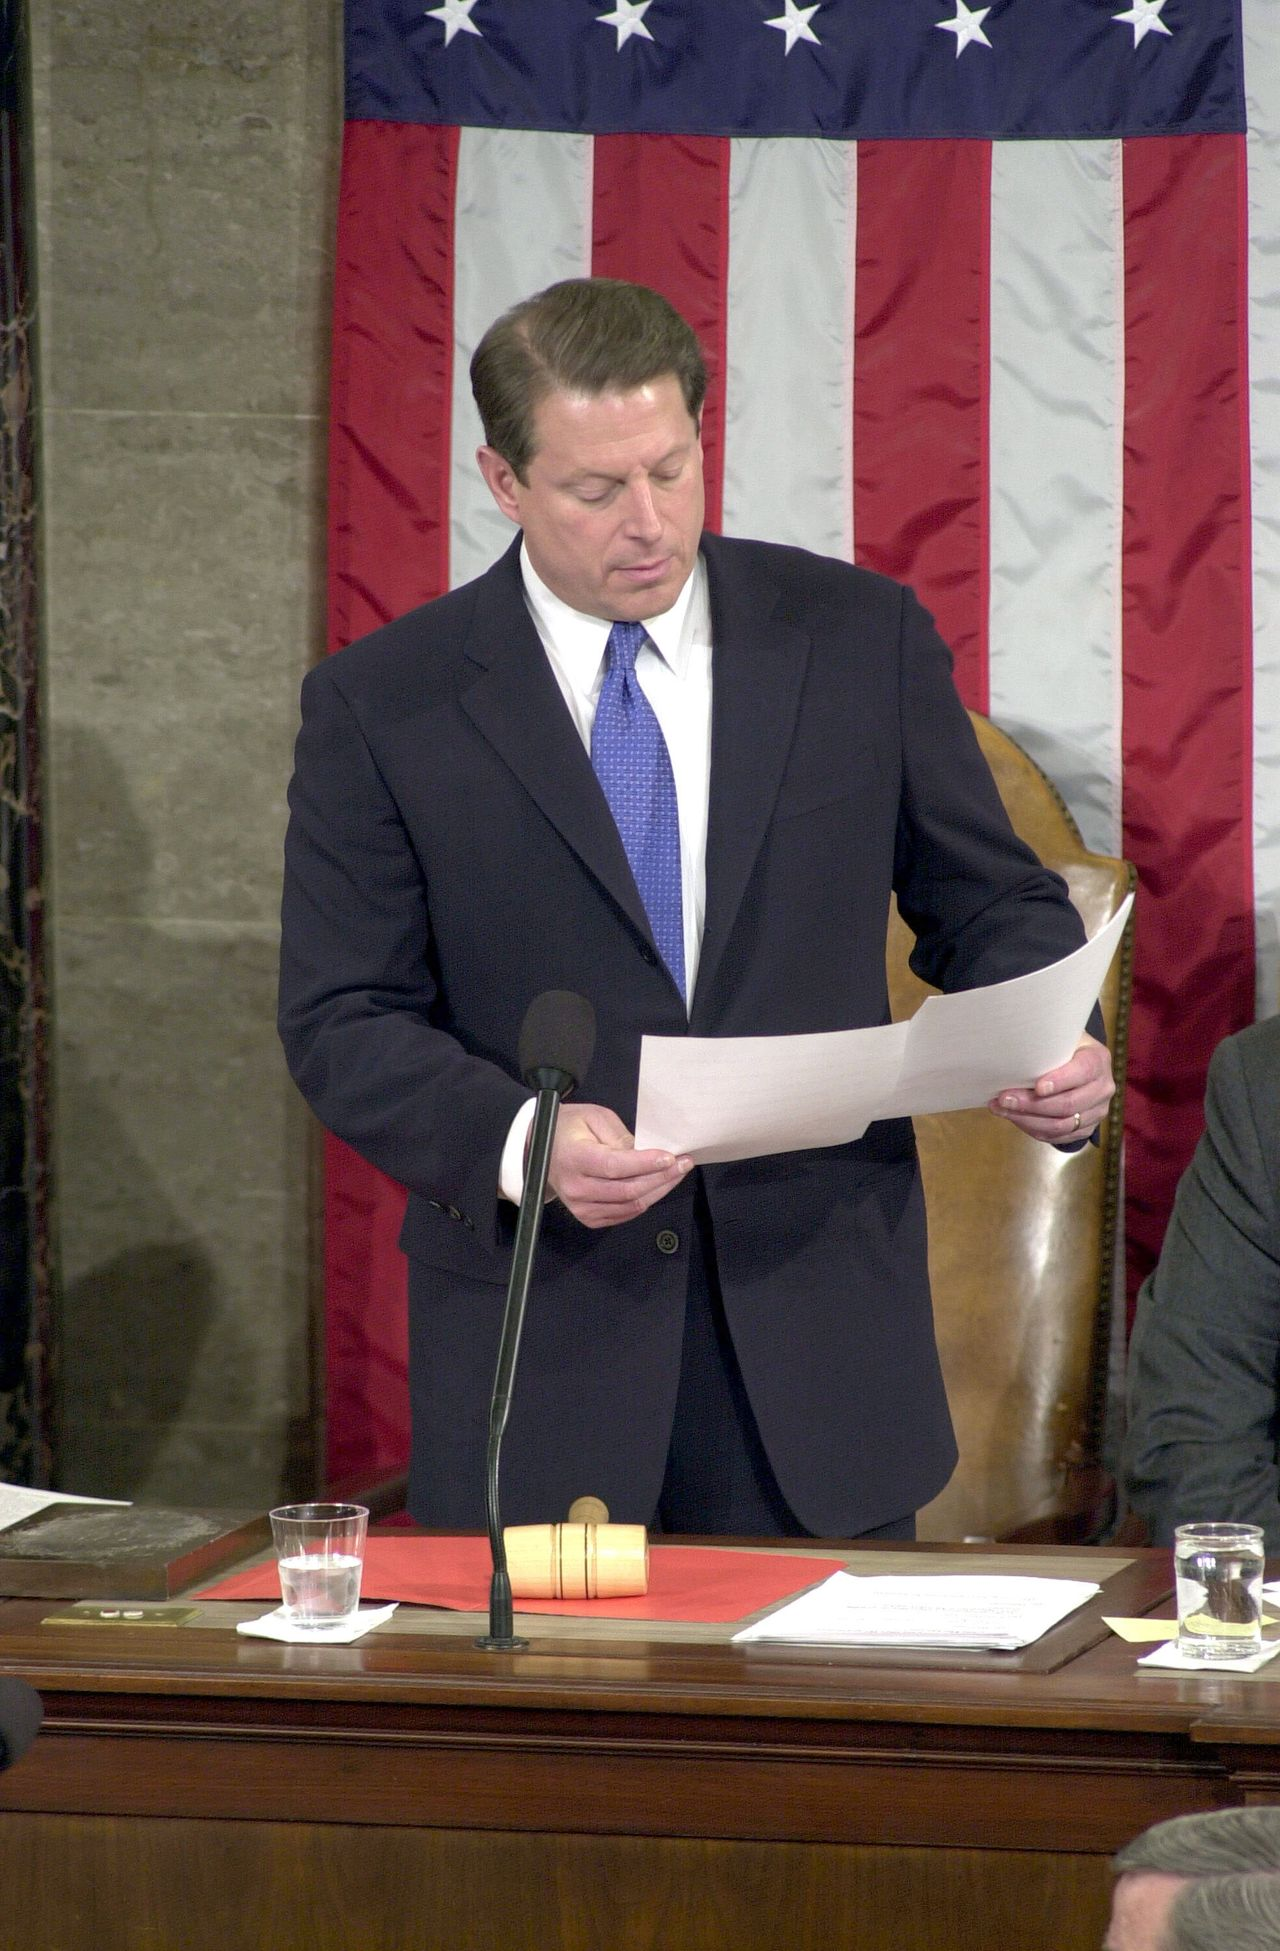 Then-Vice President Al Gore was put in the uncomfortable position of certifying before Congress in early January of 2001 that George W. Bush had defeated him in the hotly contested and controversial election two months earlier.